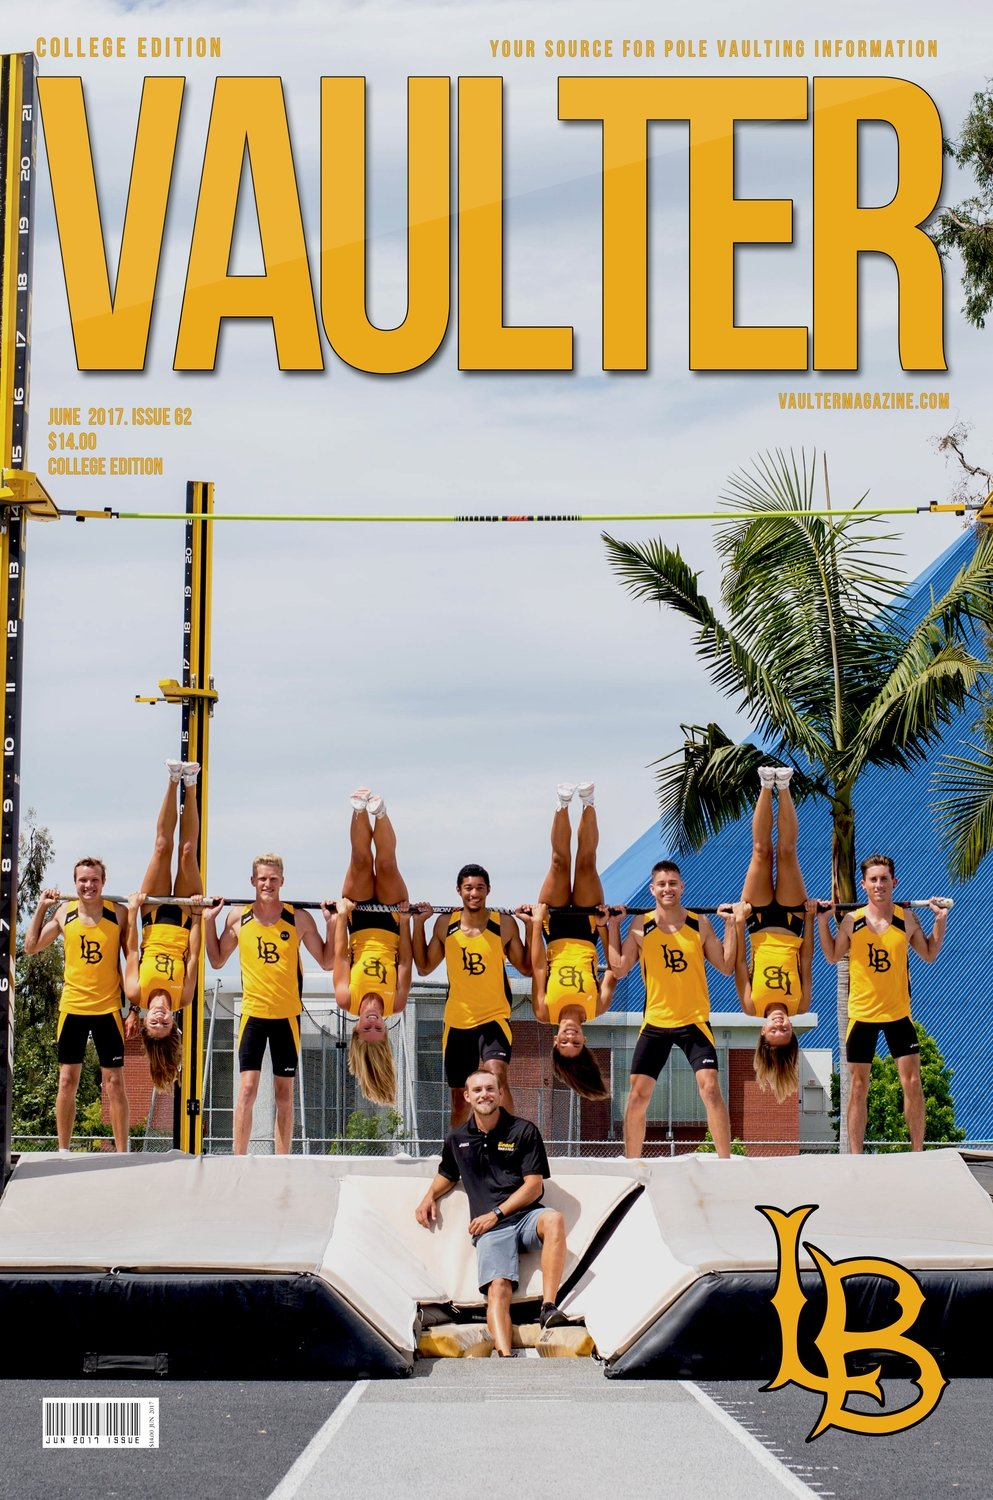 Long Beach State University Cover of Vaulter Magazine June 2017